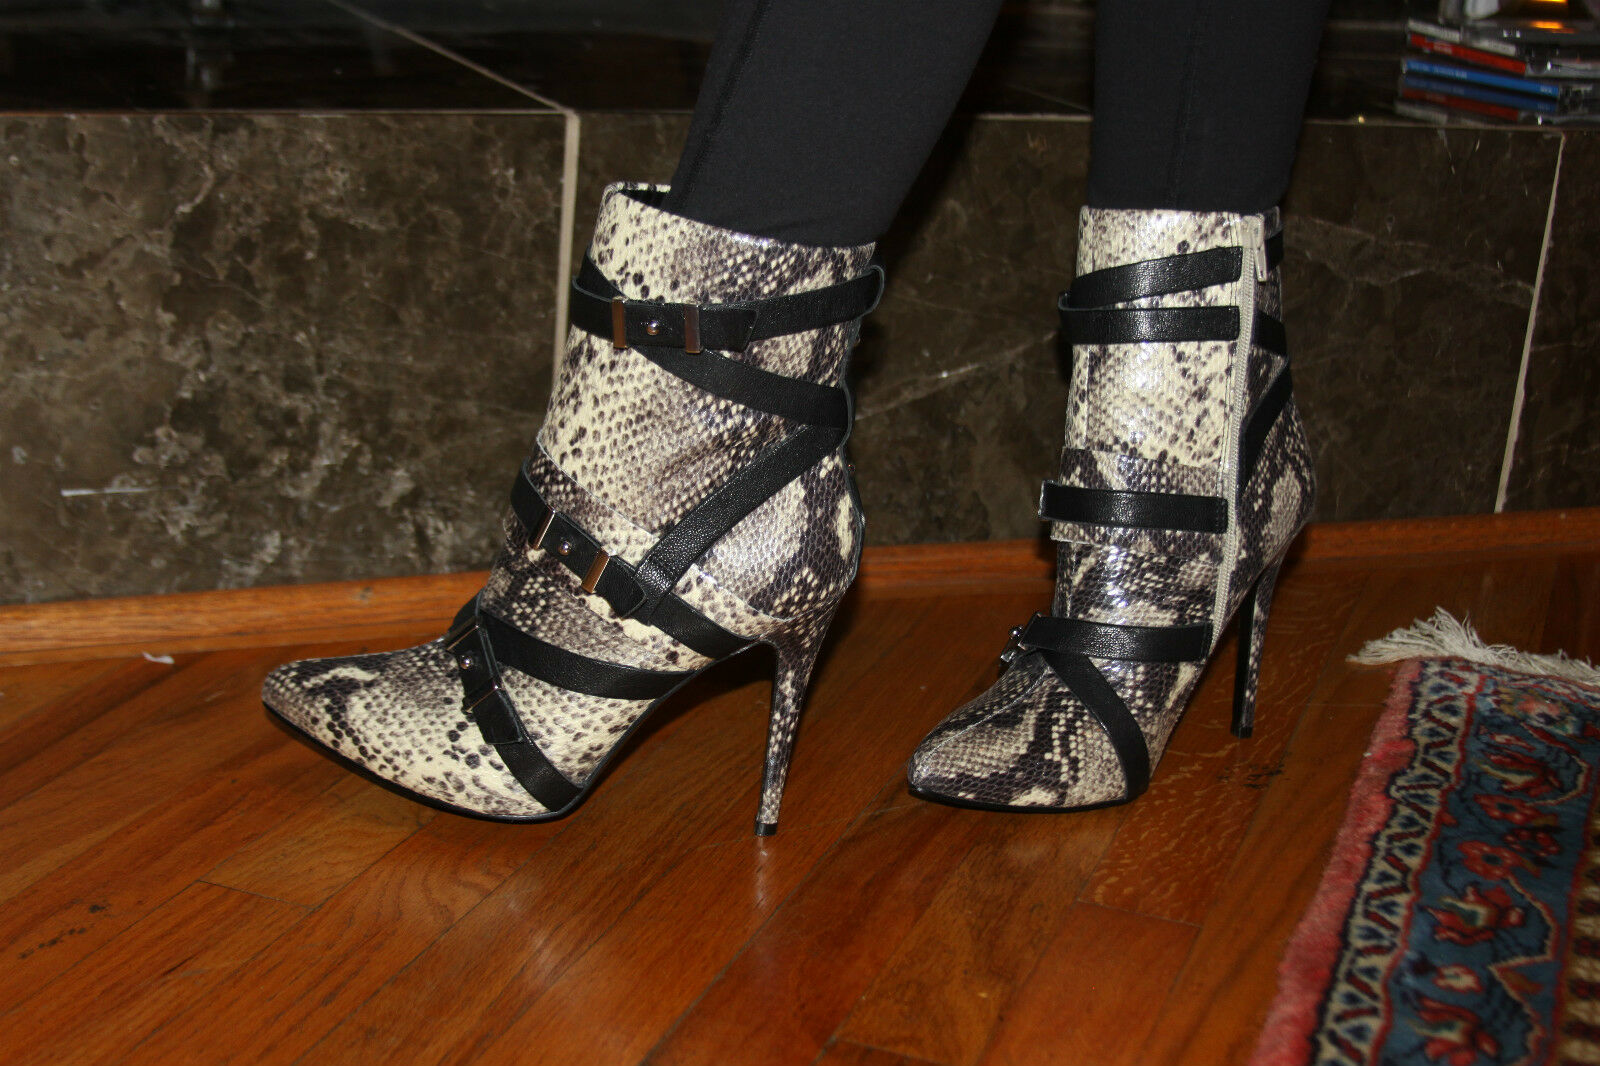 GUESS PARLEY POINTY TOE NATURAL 8 MULTI LEATHER BOOTIE SIZE 8 NATURAL 1e636c